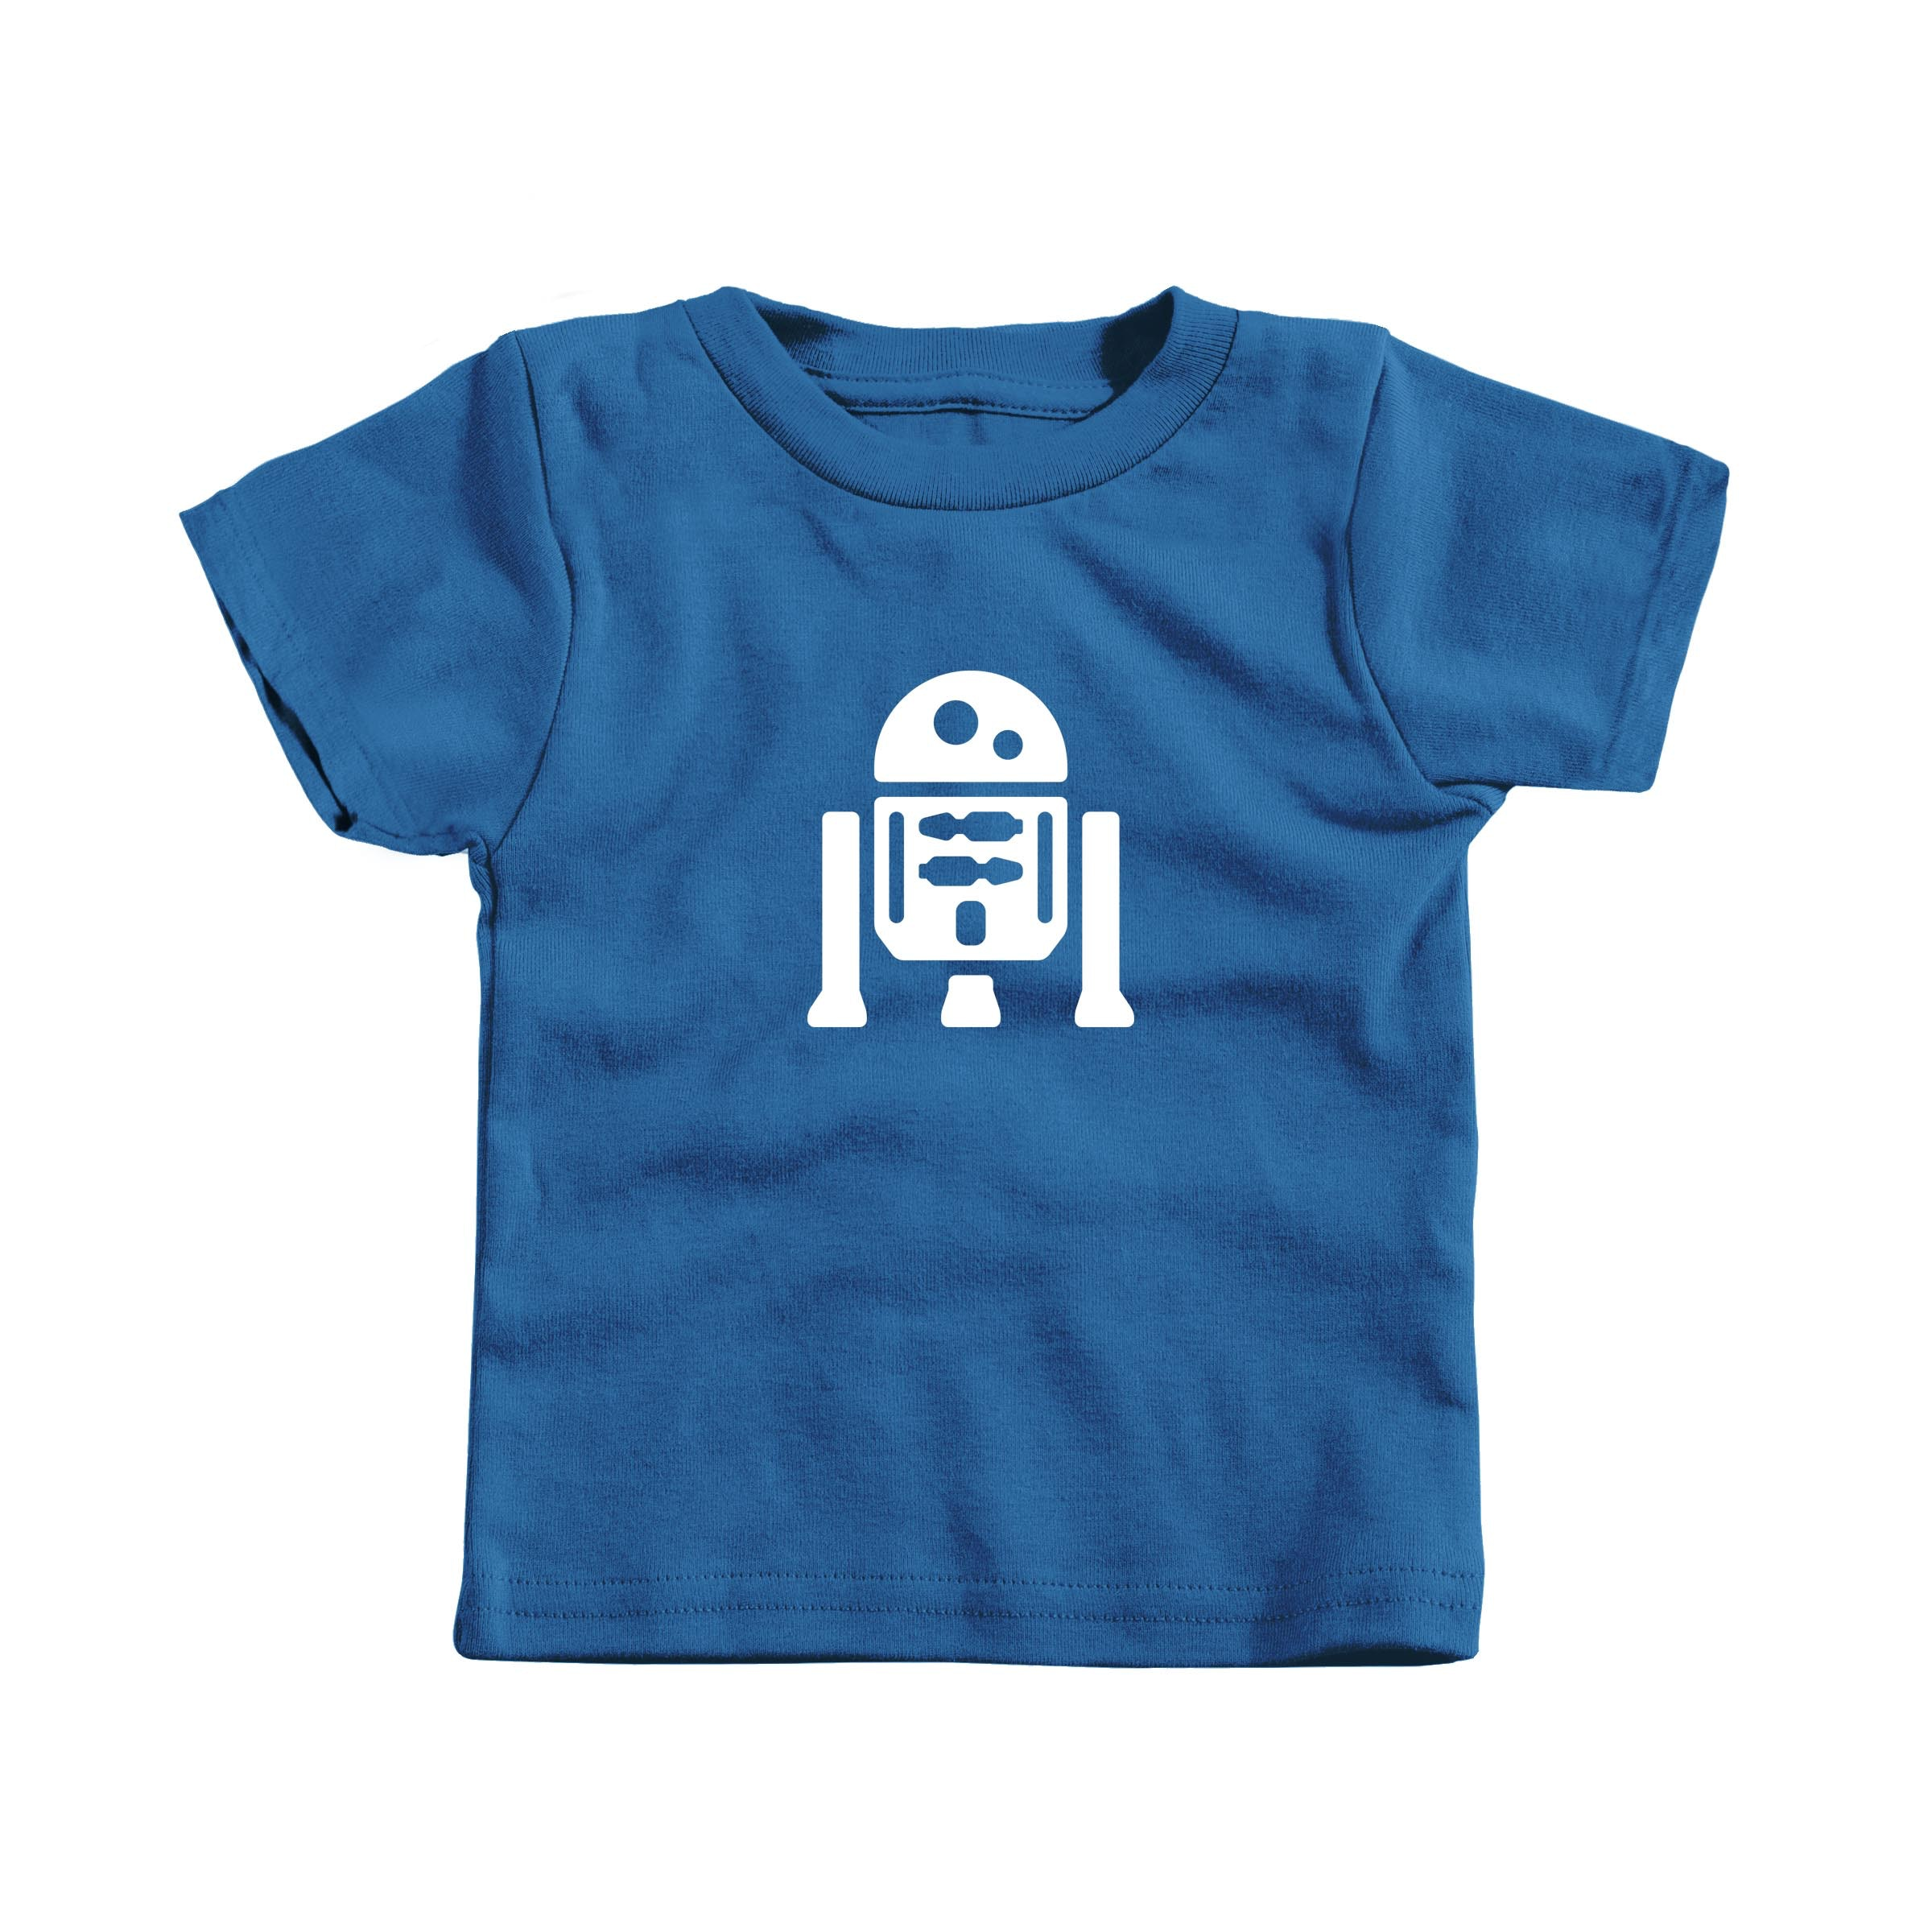 R2-D2 Royal (T-Shirt)